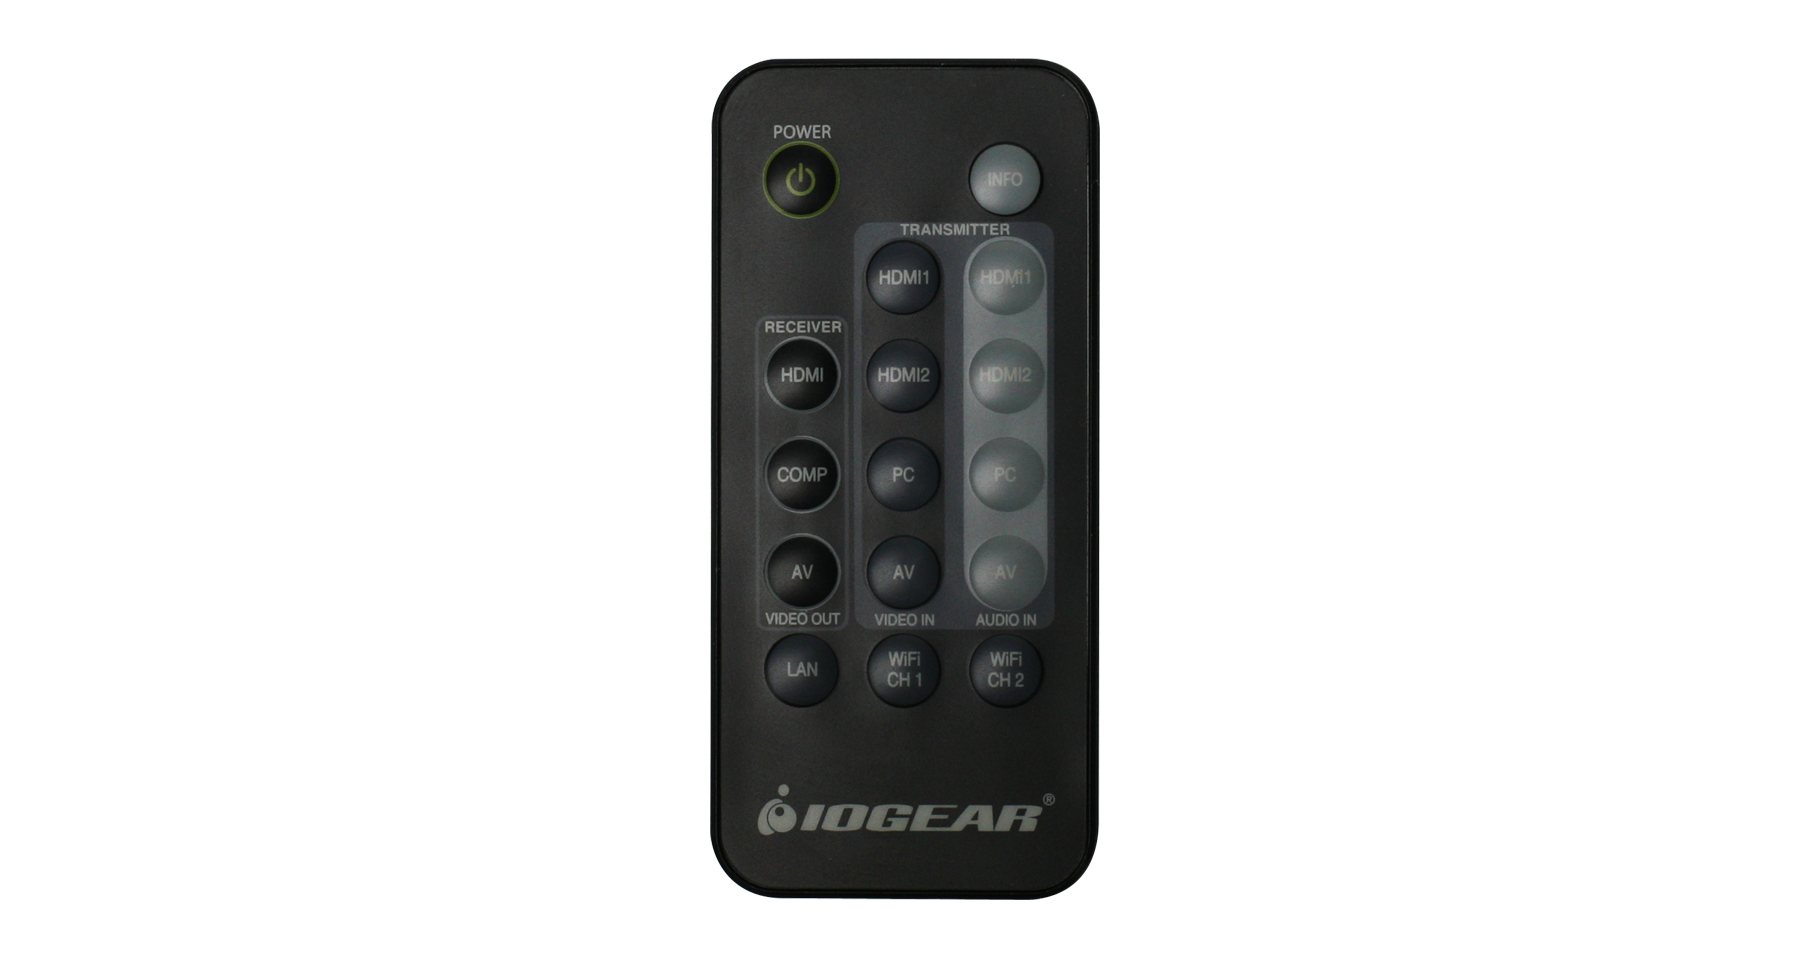 Iogear Gwrc8100 Ir Remote Control For Wireless Hd Kit Infrared Switch Transmitter Circuit